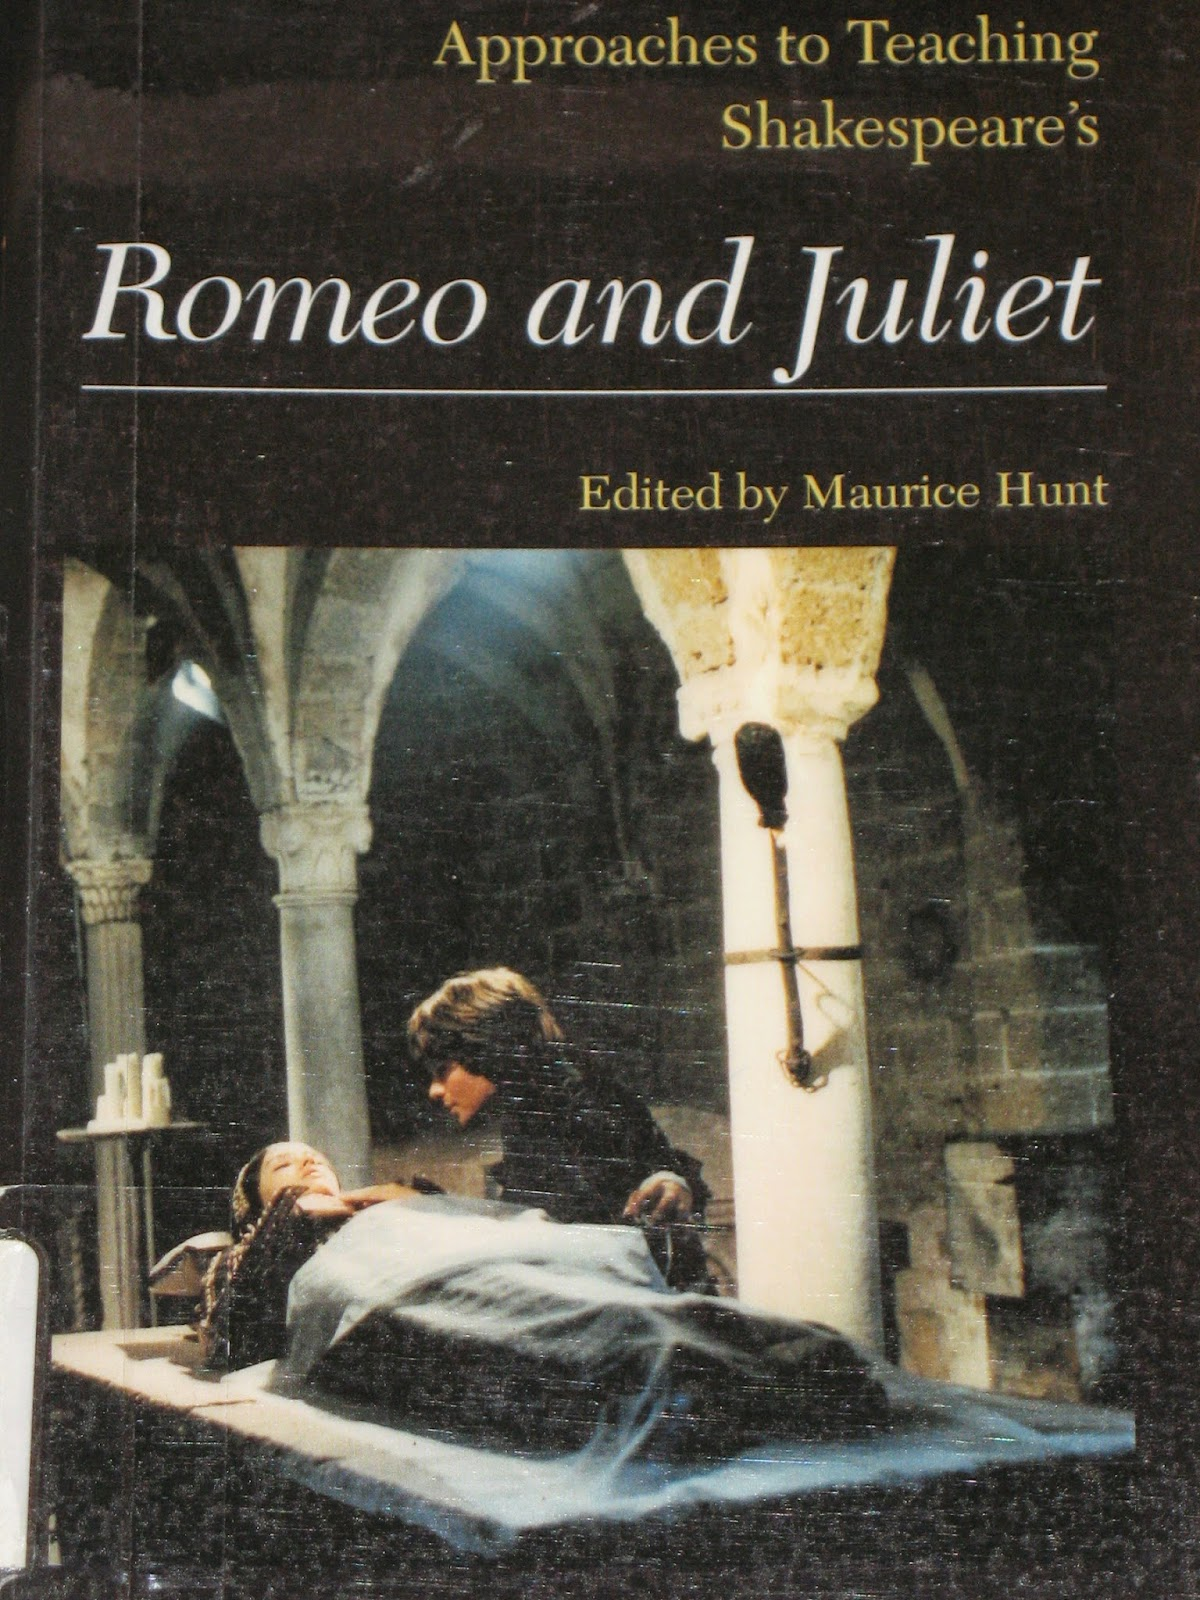 the theme of immaturity in shakespeares romeo and juliet Themes themes are the fundamental and often universal ideas explored in a literary work the forcefulness of love  romeo and juliet is the most famous love story in the english literary traditionlove is naturally the play's dominant and most important theme.